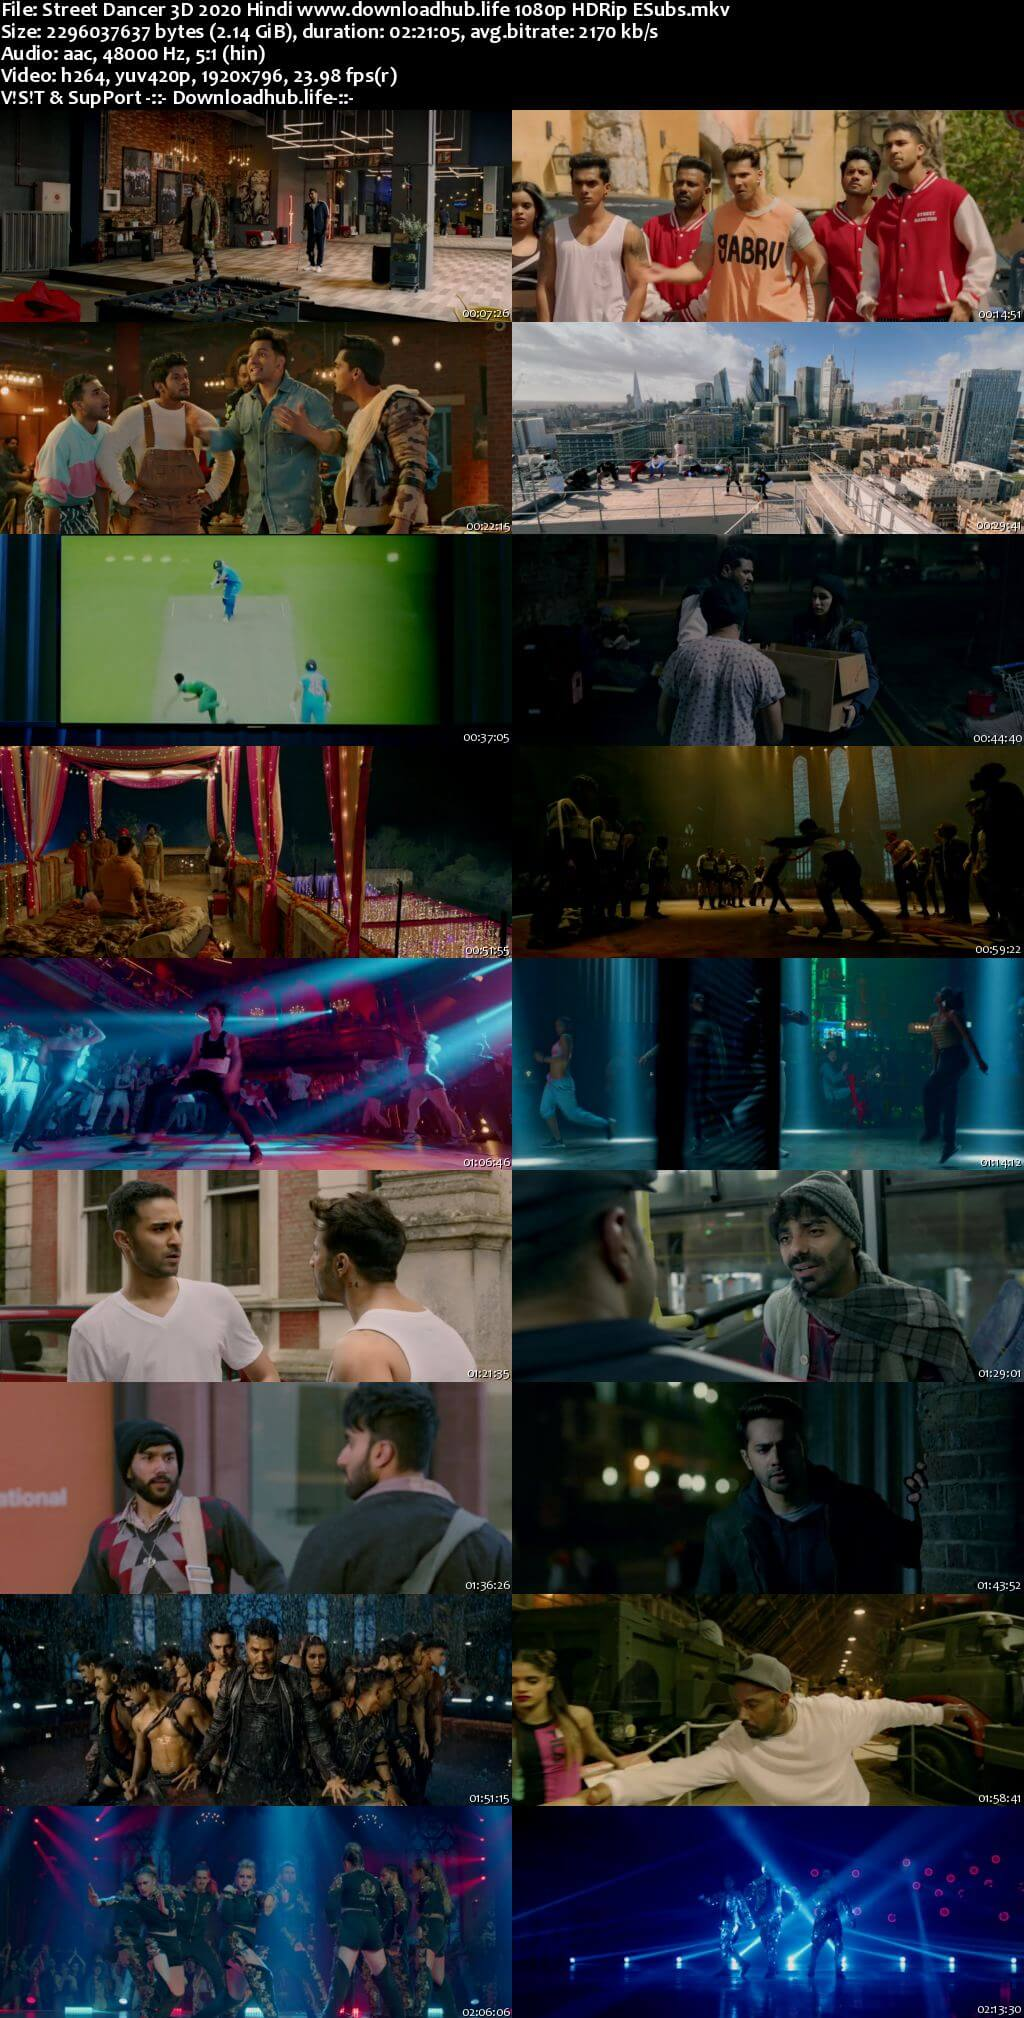 Street Dancer 3D 2020 Hindi 1080p HDRip ESubs